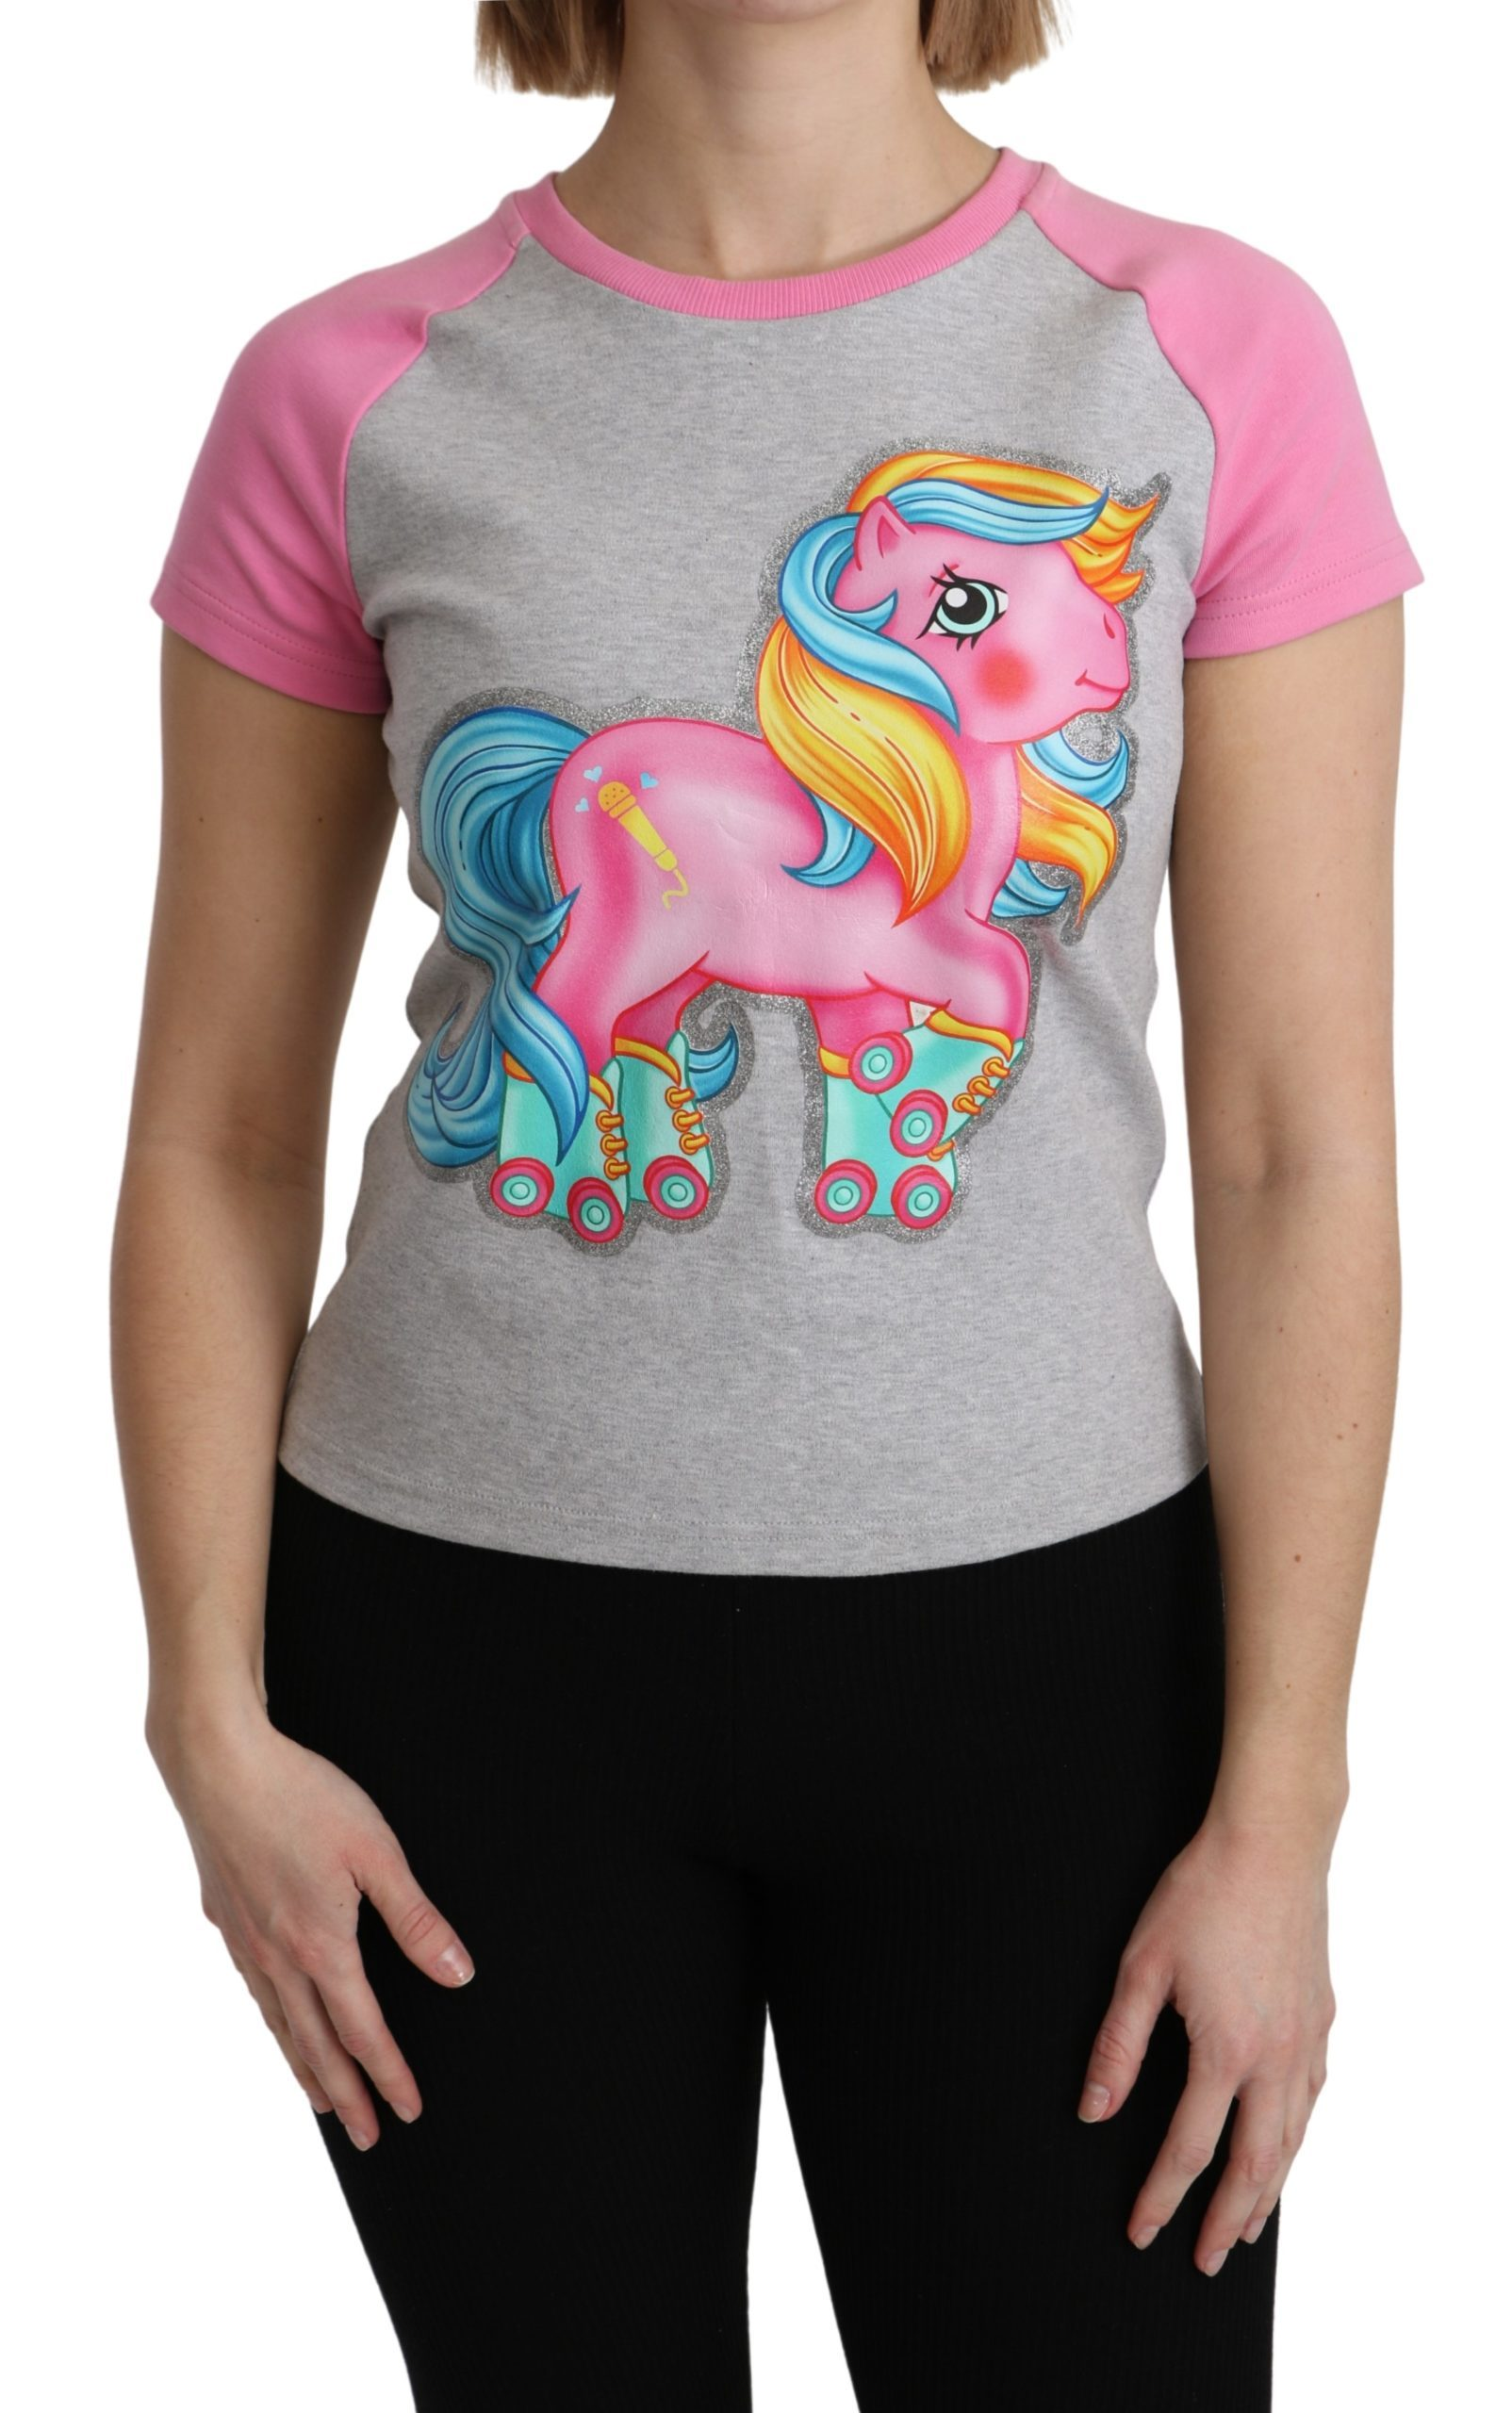 Moschino Women's Cotton My Little Pony Top Multicolor TSH5088 - IT36 | XS